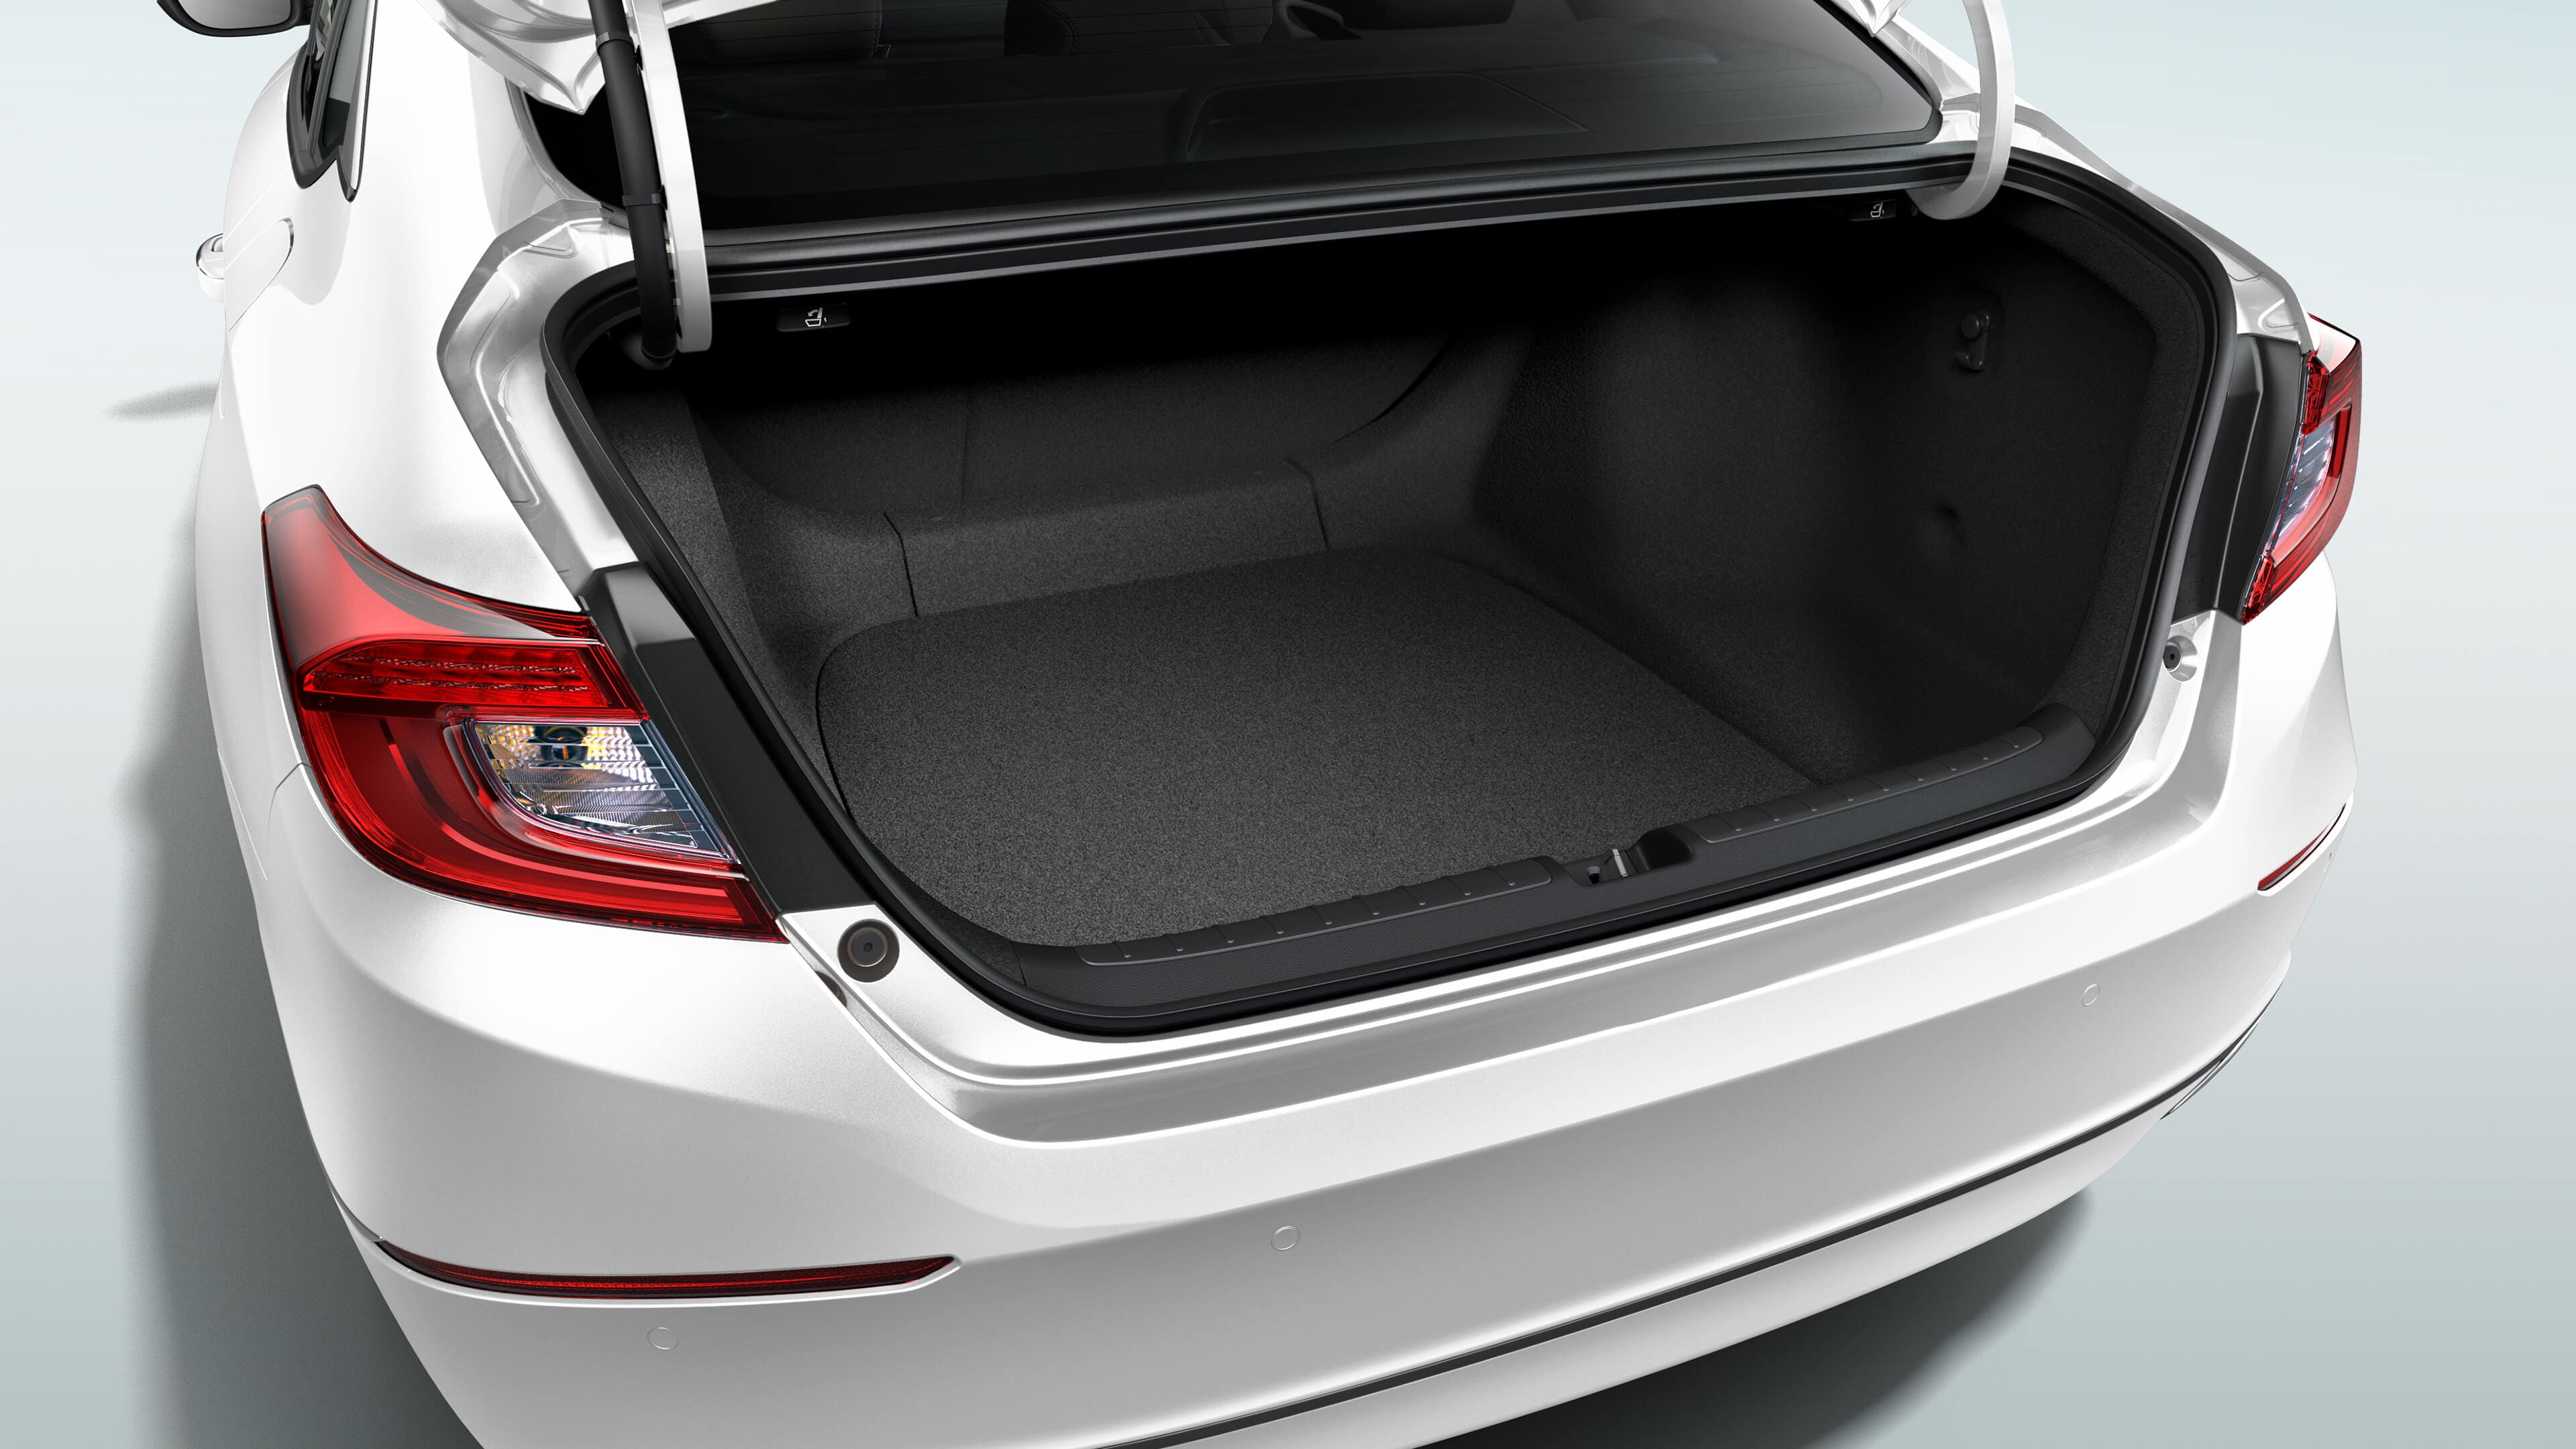 Trunk open of the Accord Hybrid